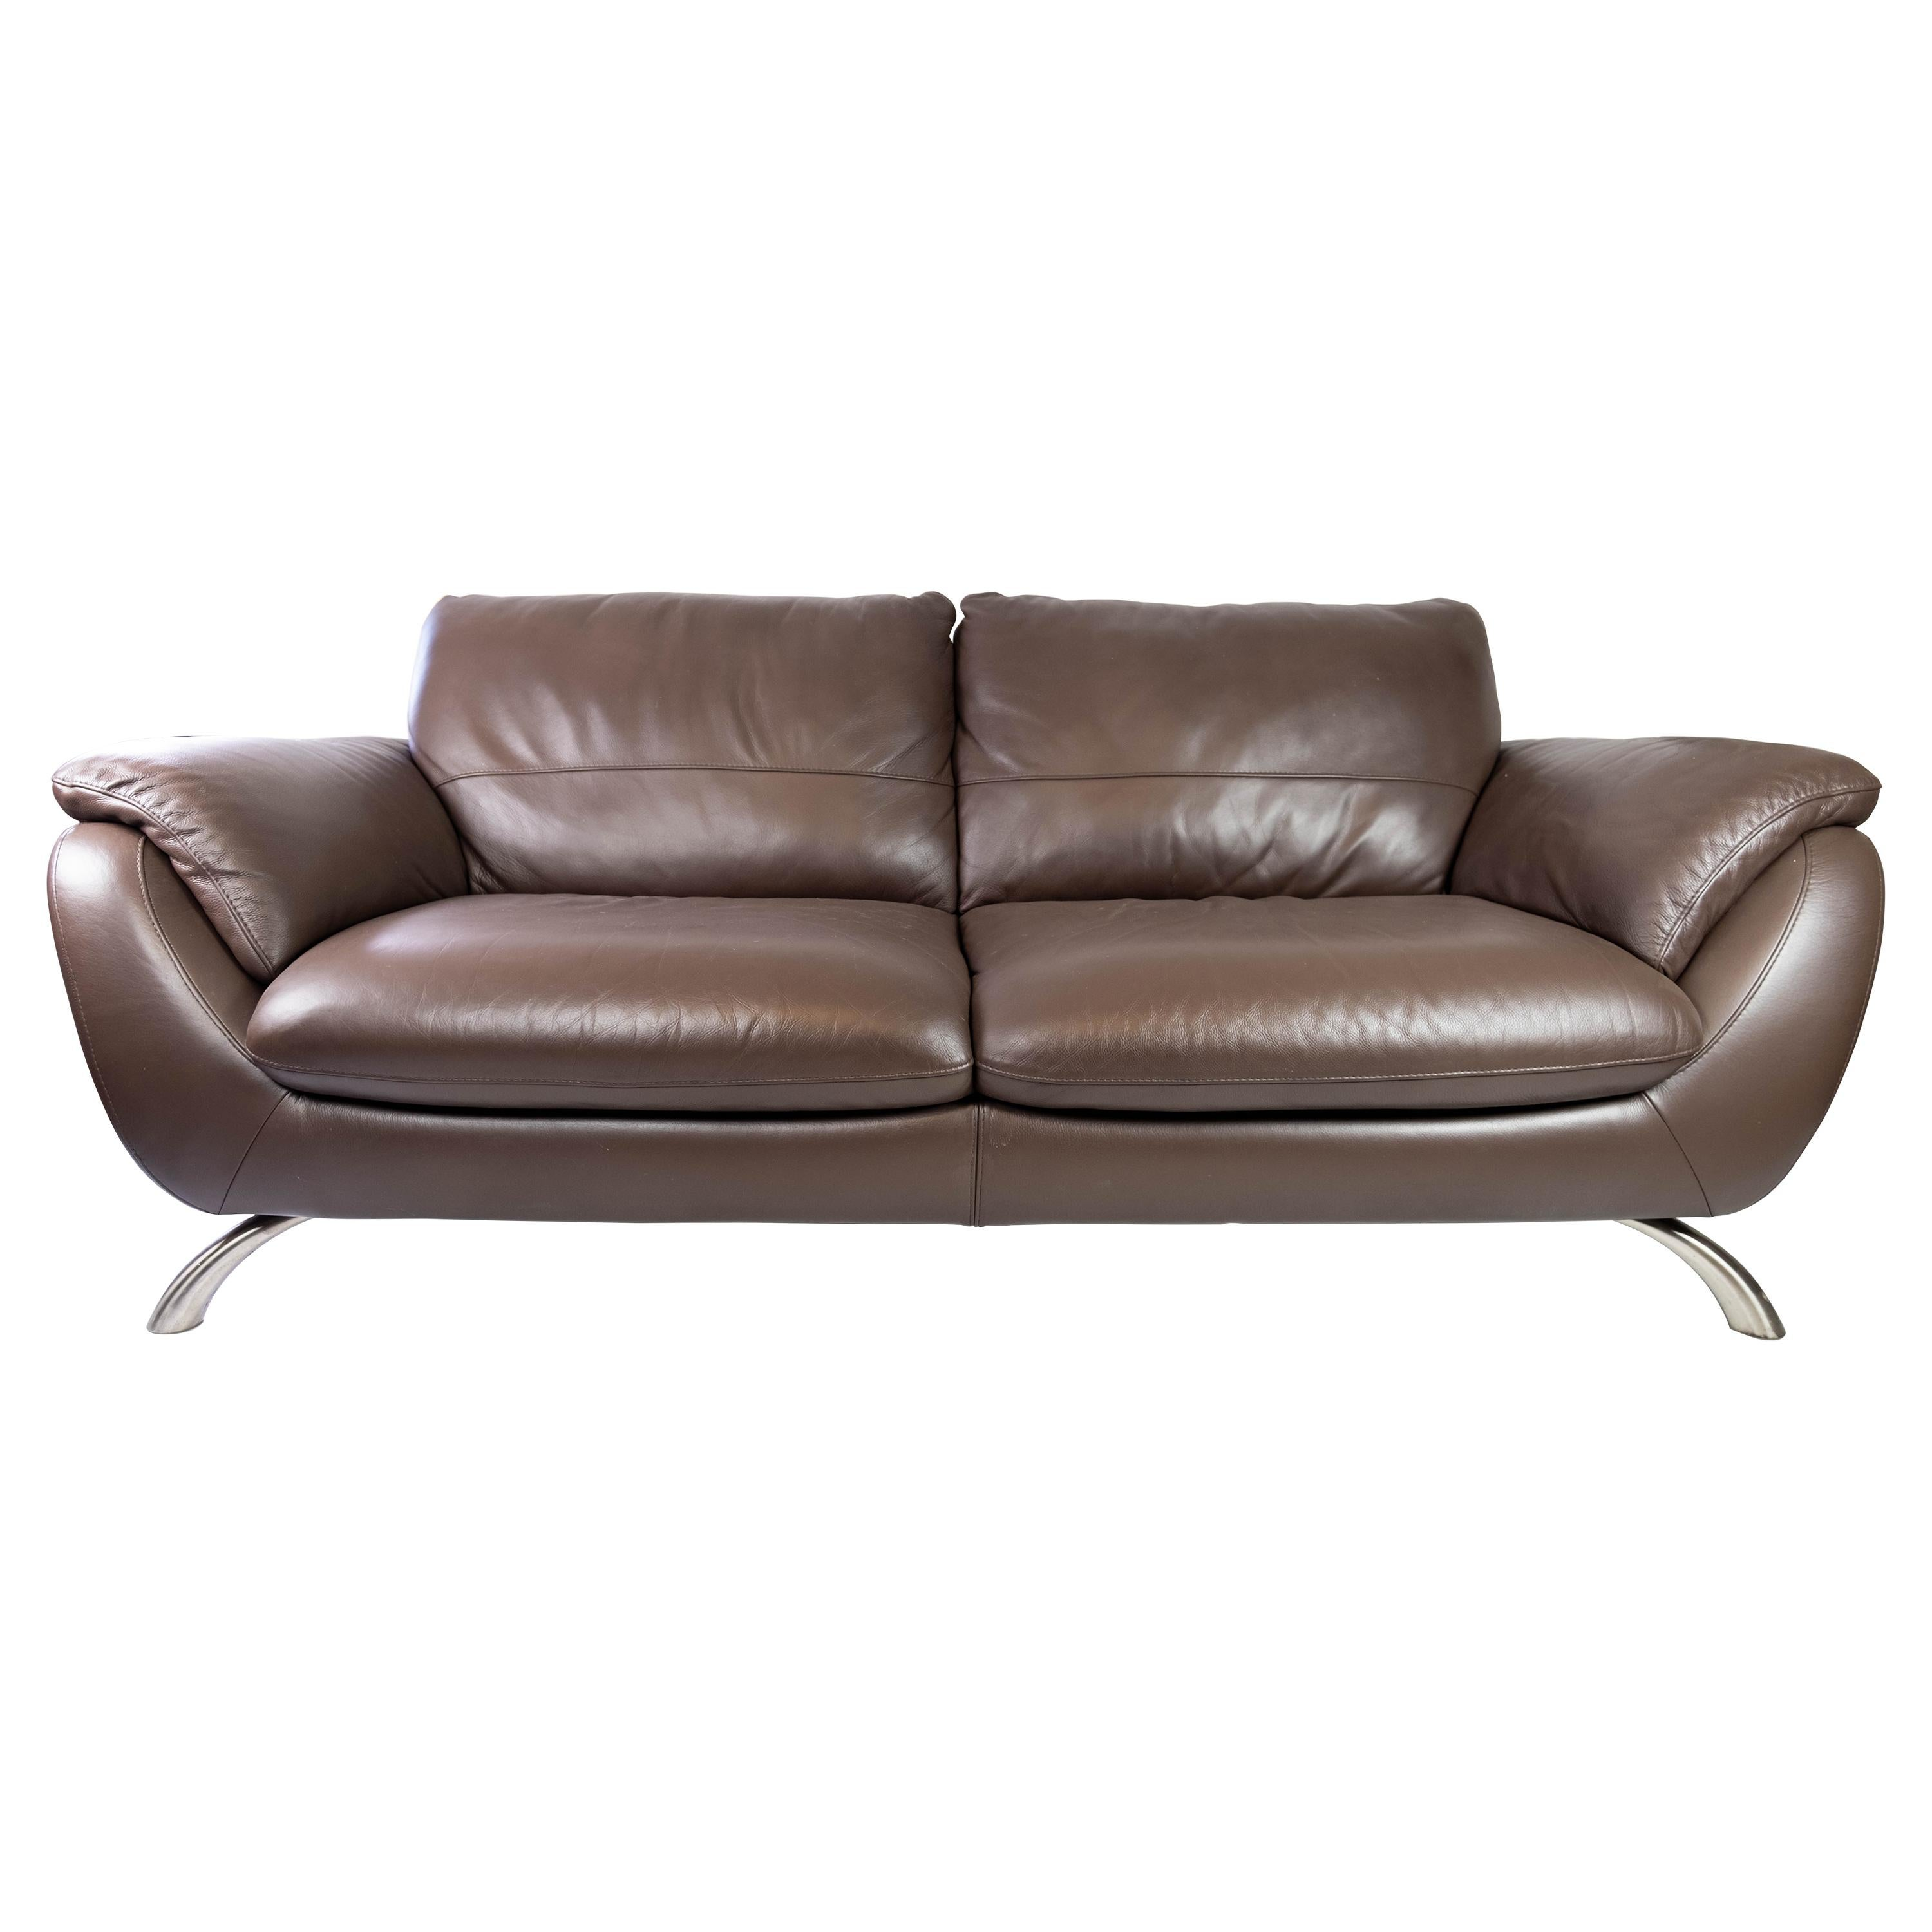 Large Two Seater Sofa Upholstered with Brown Leather, Italsofa